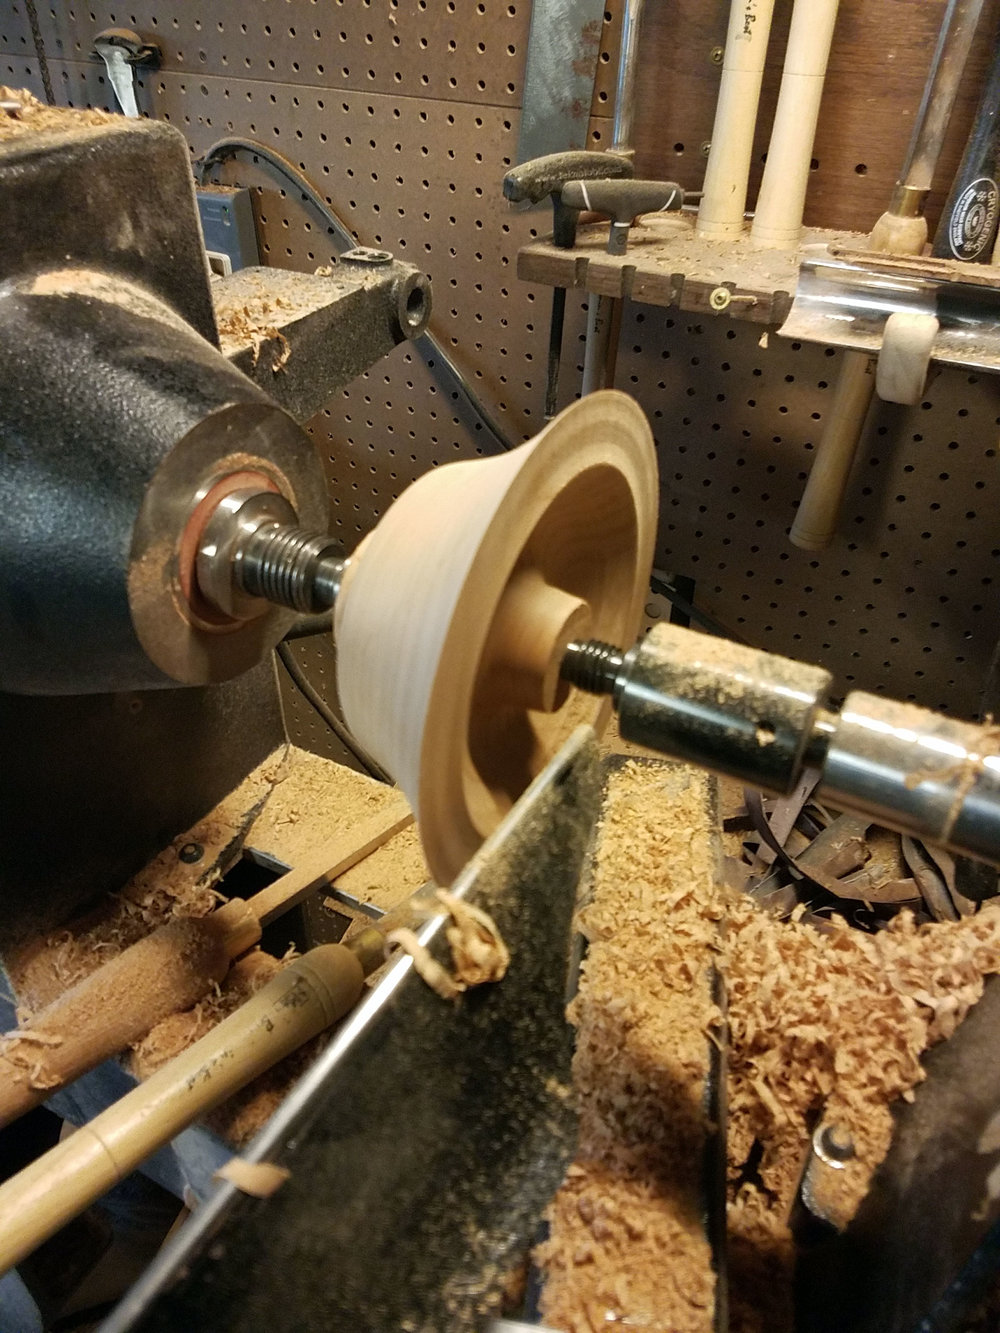 At one point, the chunk of Cherry wood is turned between centers on the lathe.